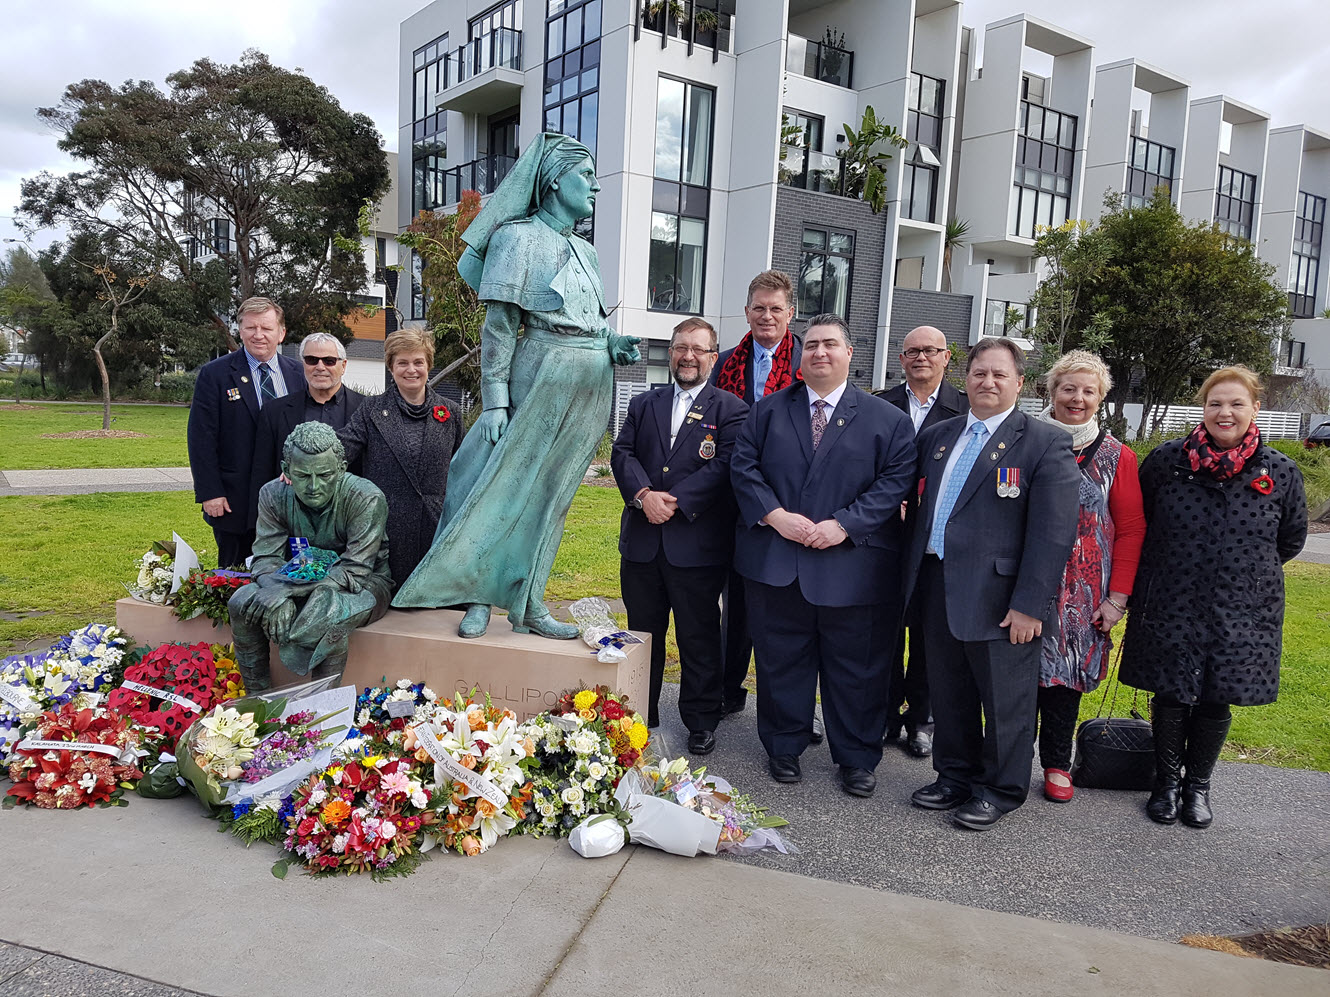 The Lemnos Gallipoli Commemorating Committee